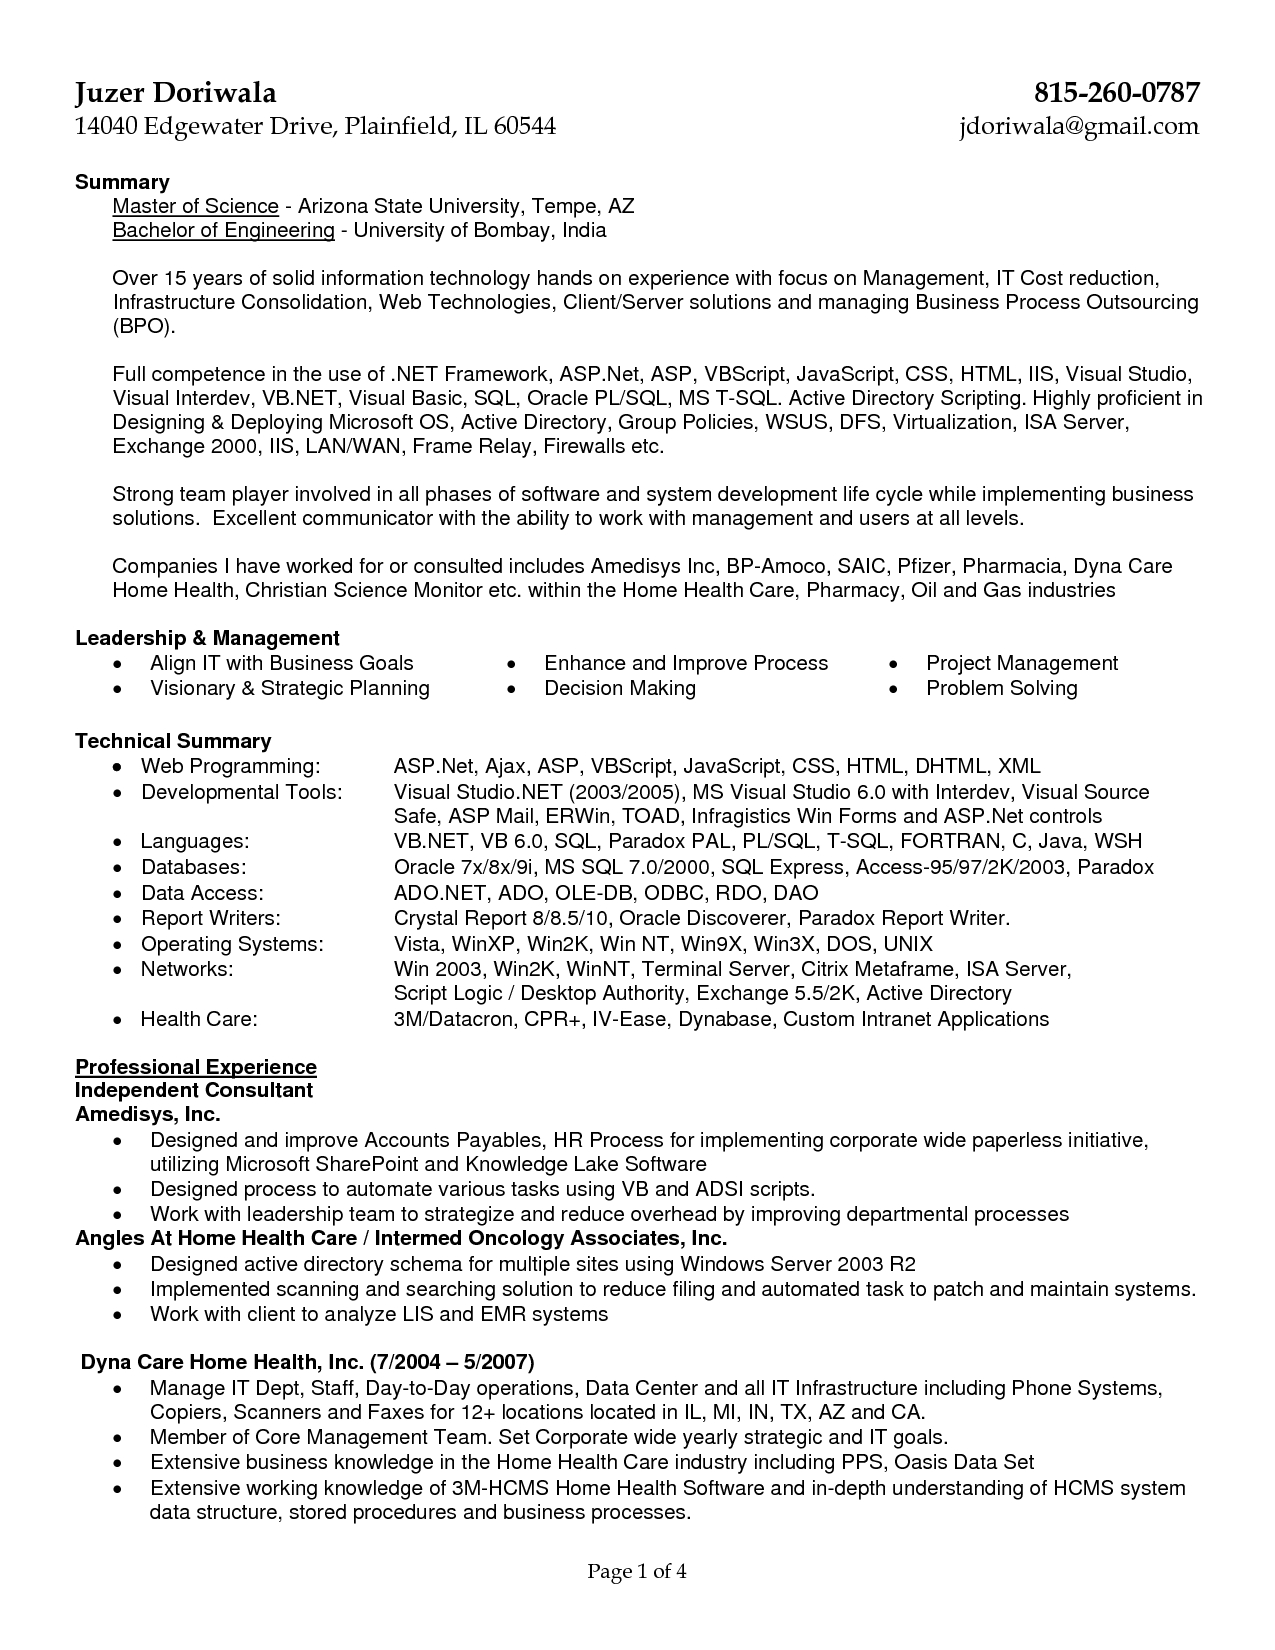 Sample Resume for Medical Billing - Medical Billing Resume Examples Hirnsturm